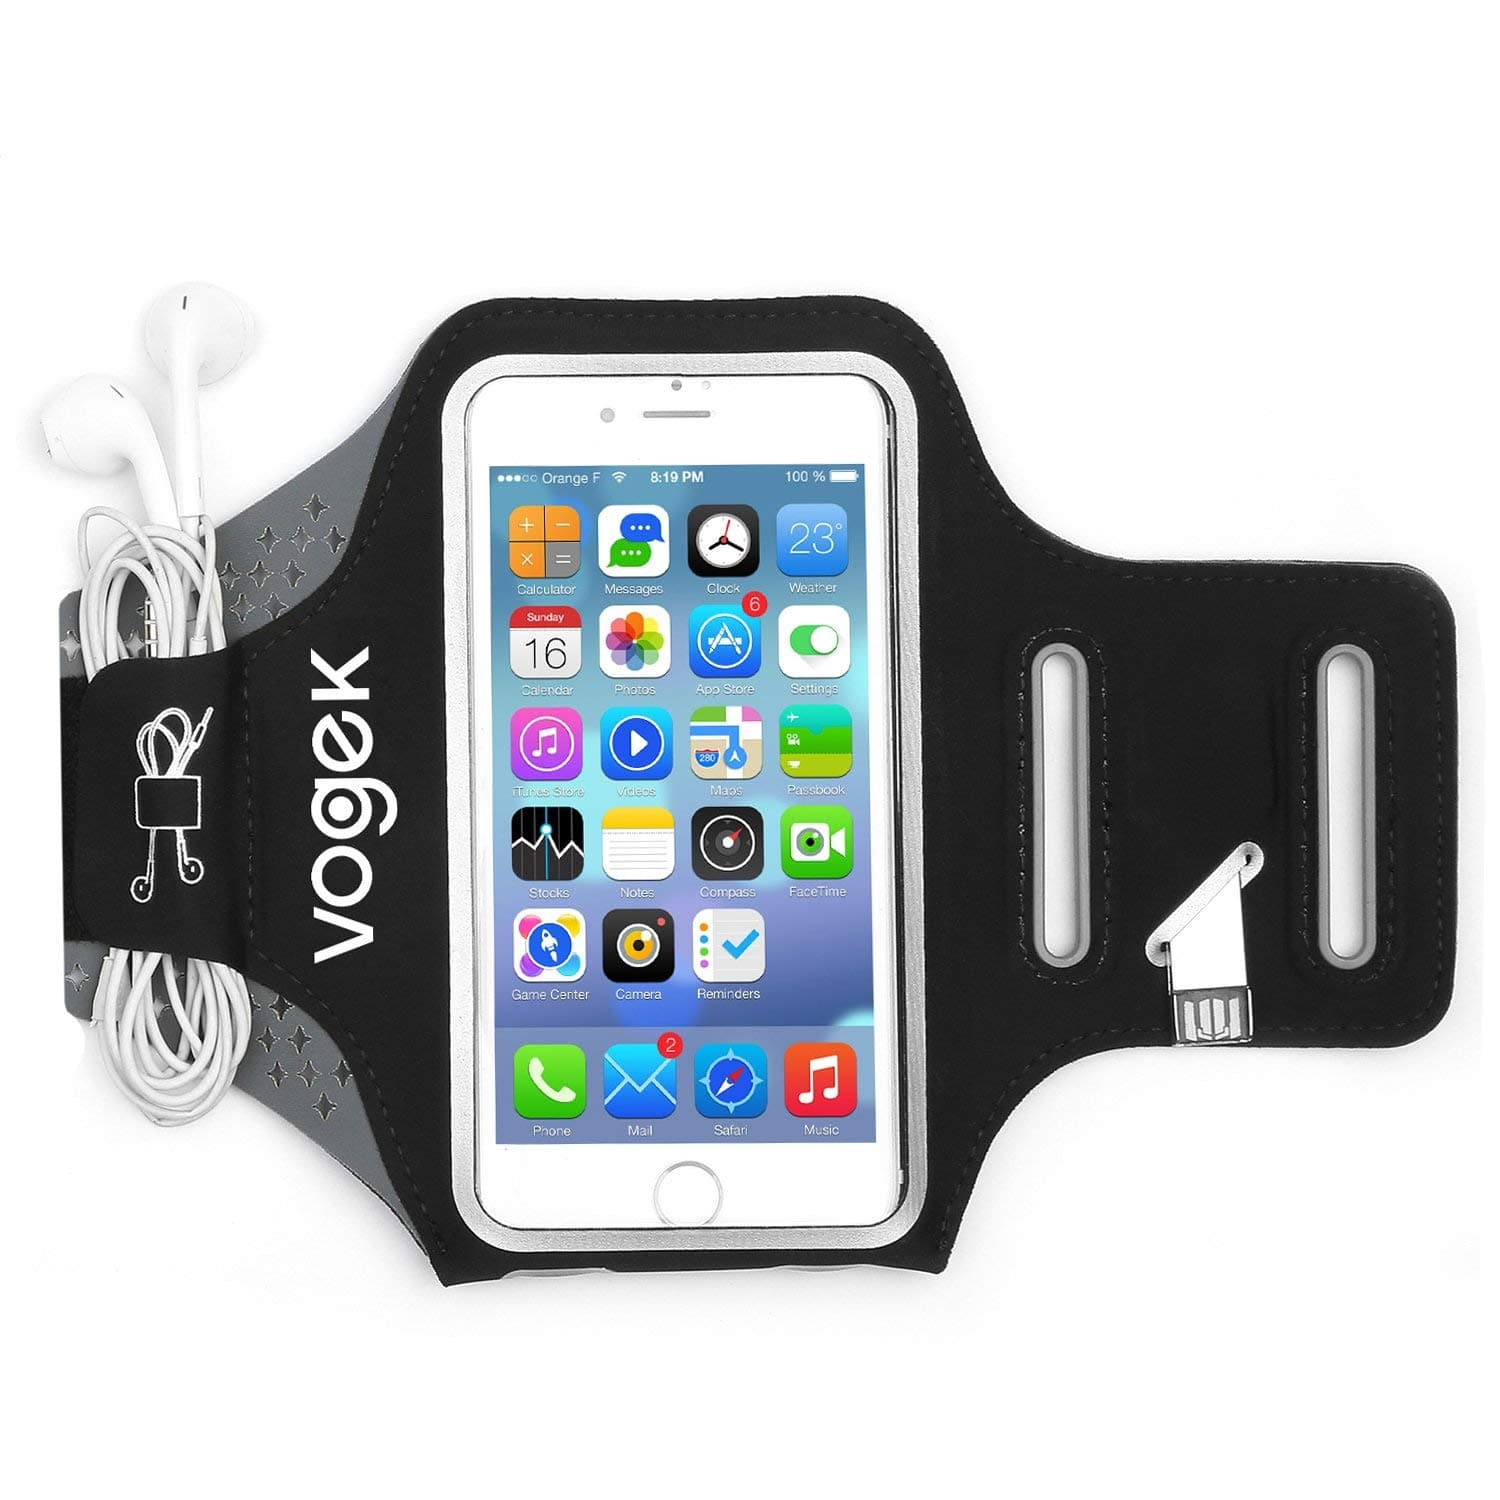 Vogek Sweatproof and Adjustable Arm Band, Suitable for iPhone6/6s Samsung S5/S6/S7 & more $5.49 @Amazon